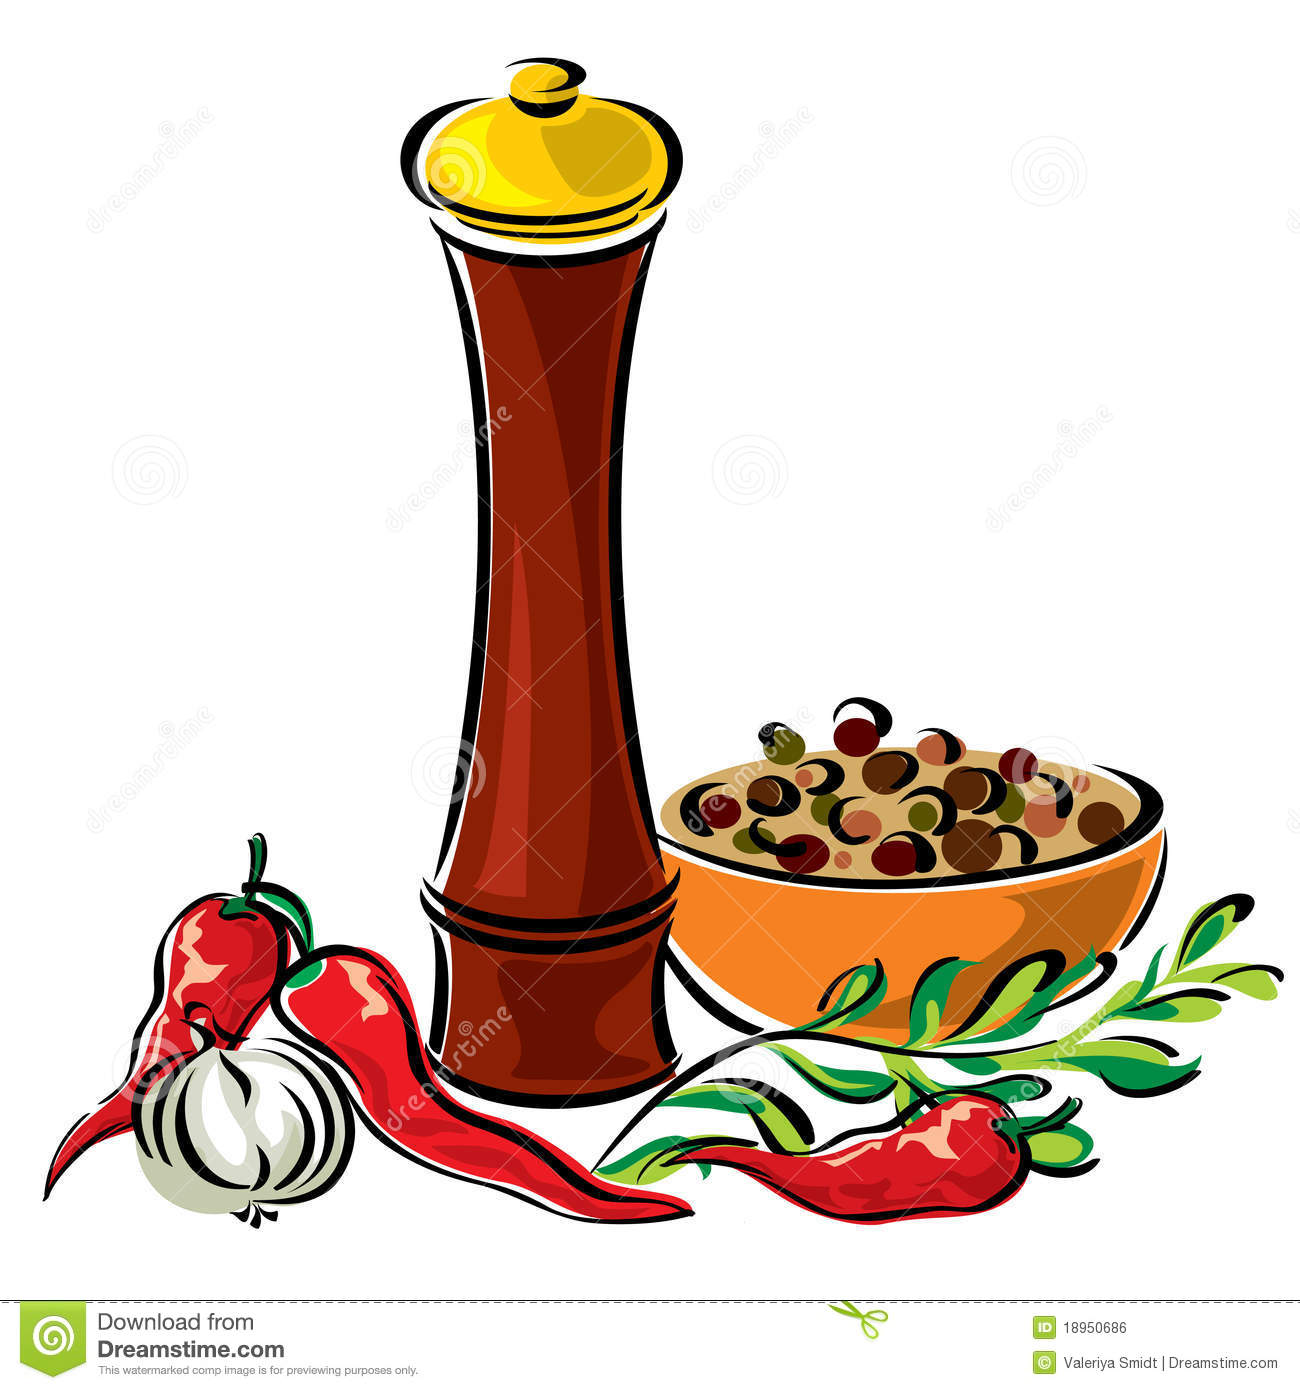 Spices clipart indian spice Seasoning Spice Spices Clipart cliparts